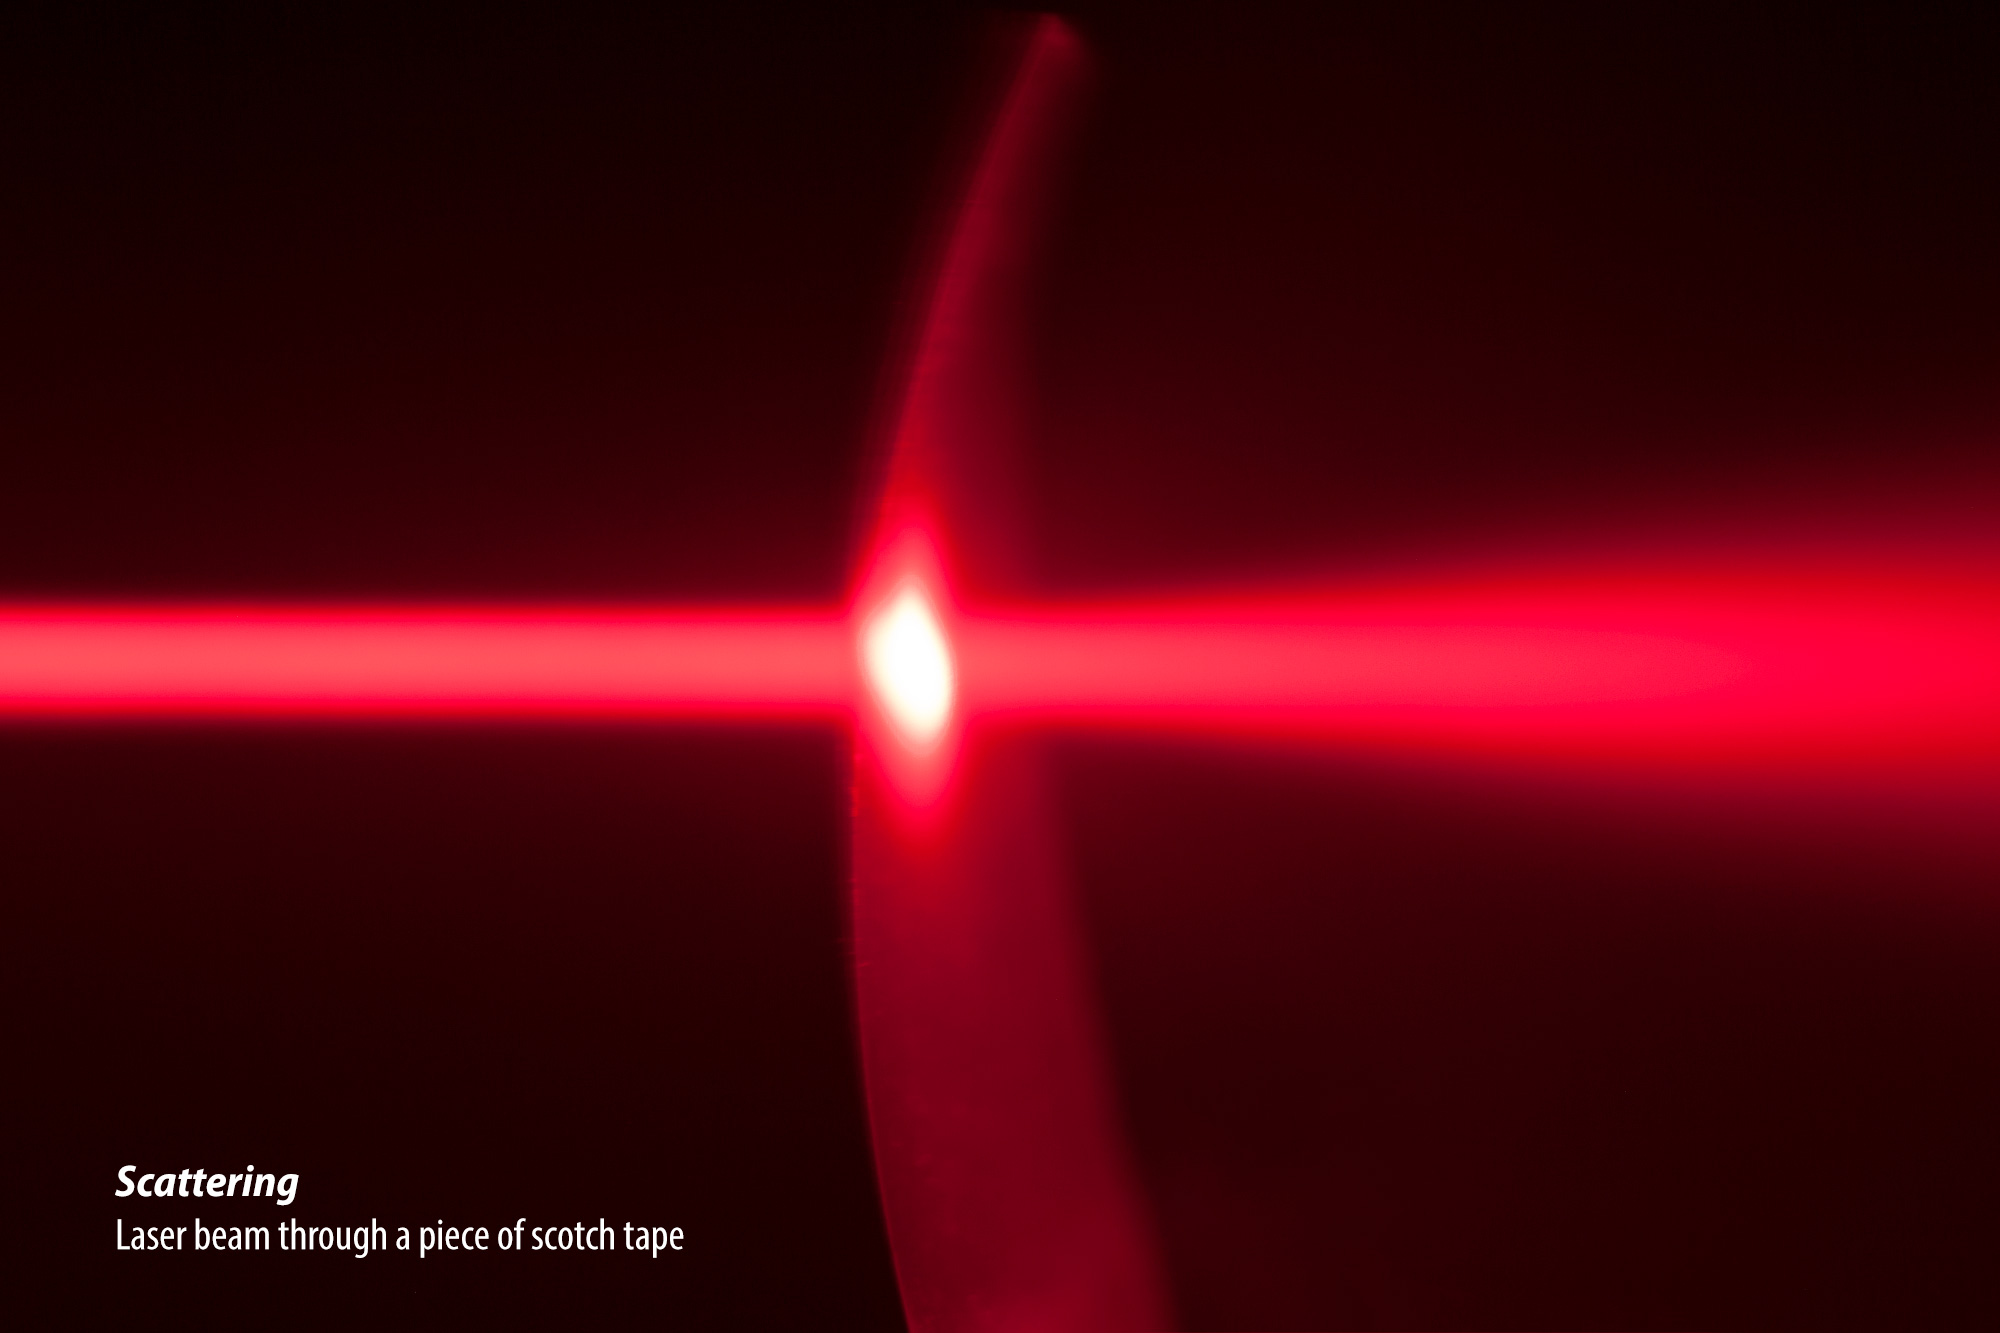 Laser beam through a piece of scotch tape